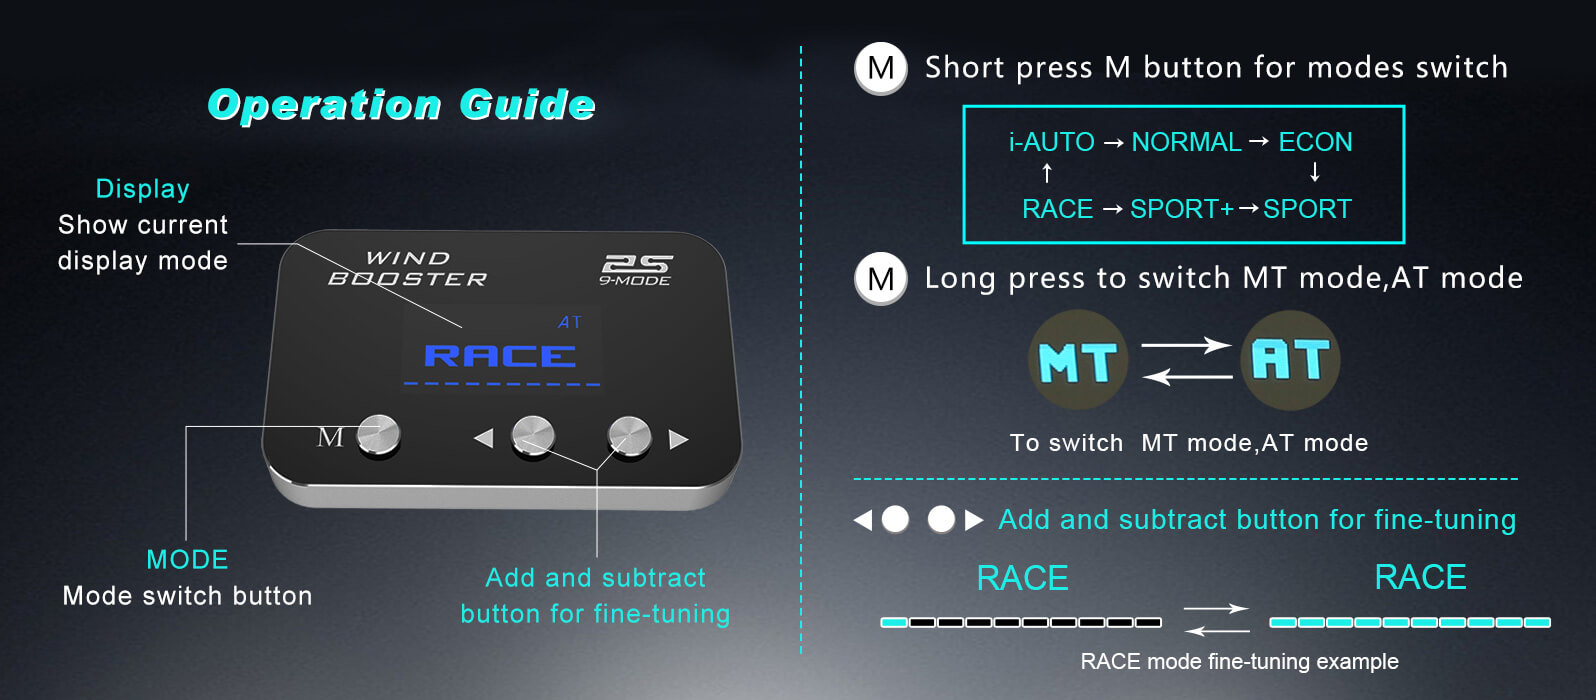 9mode 2s operation guide